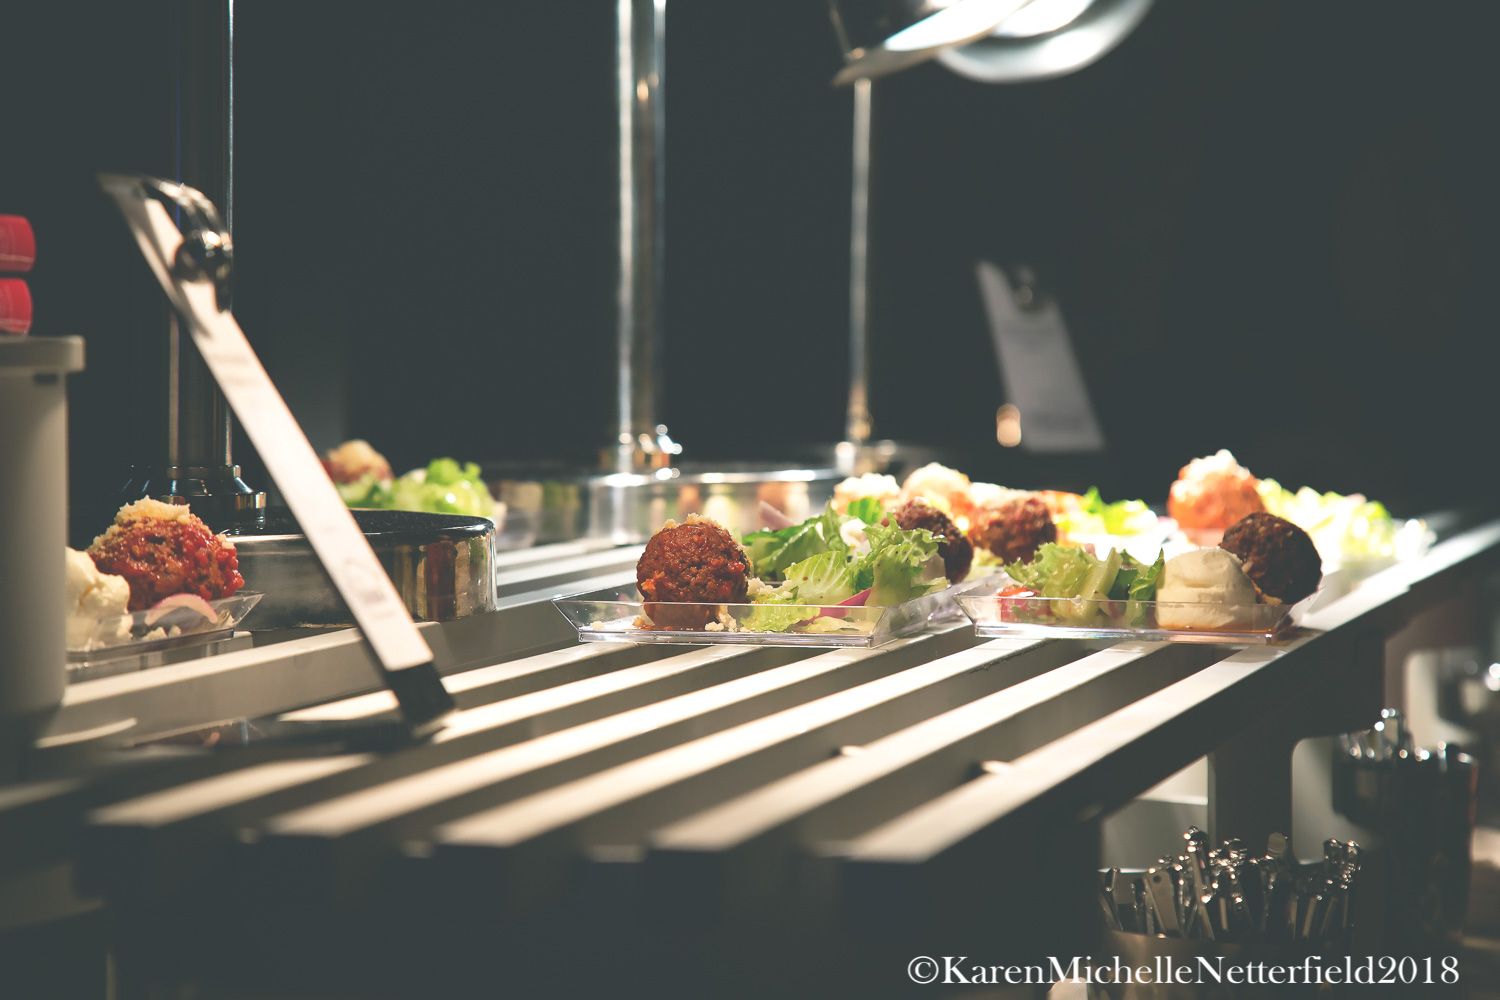 Conference_Food_Catering_Product_Shot©KarenMichelleNetterfield2017.jpg